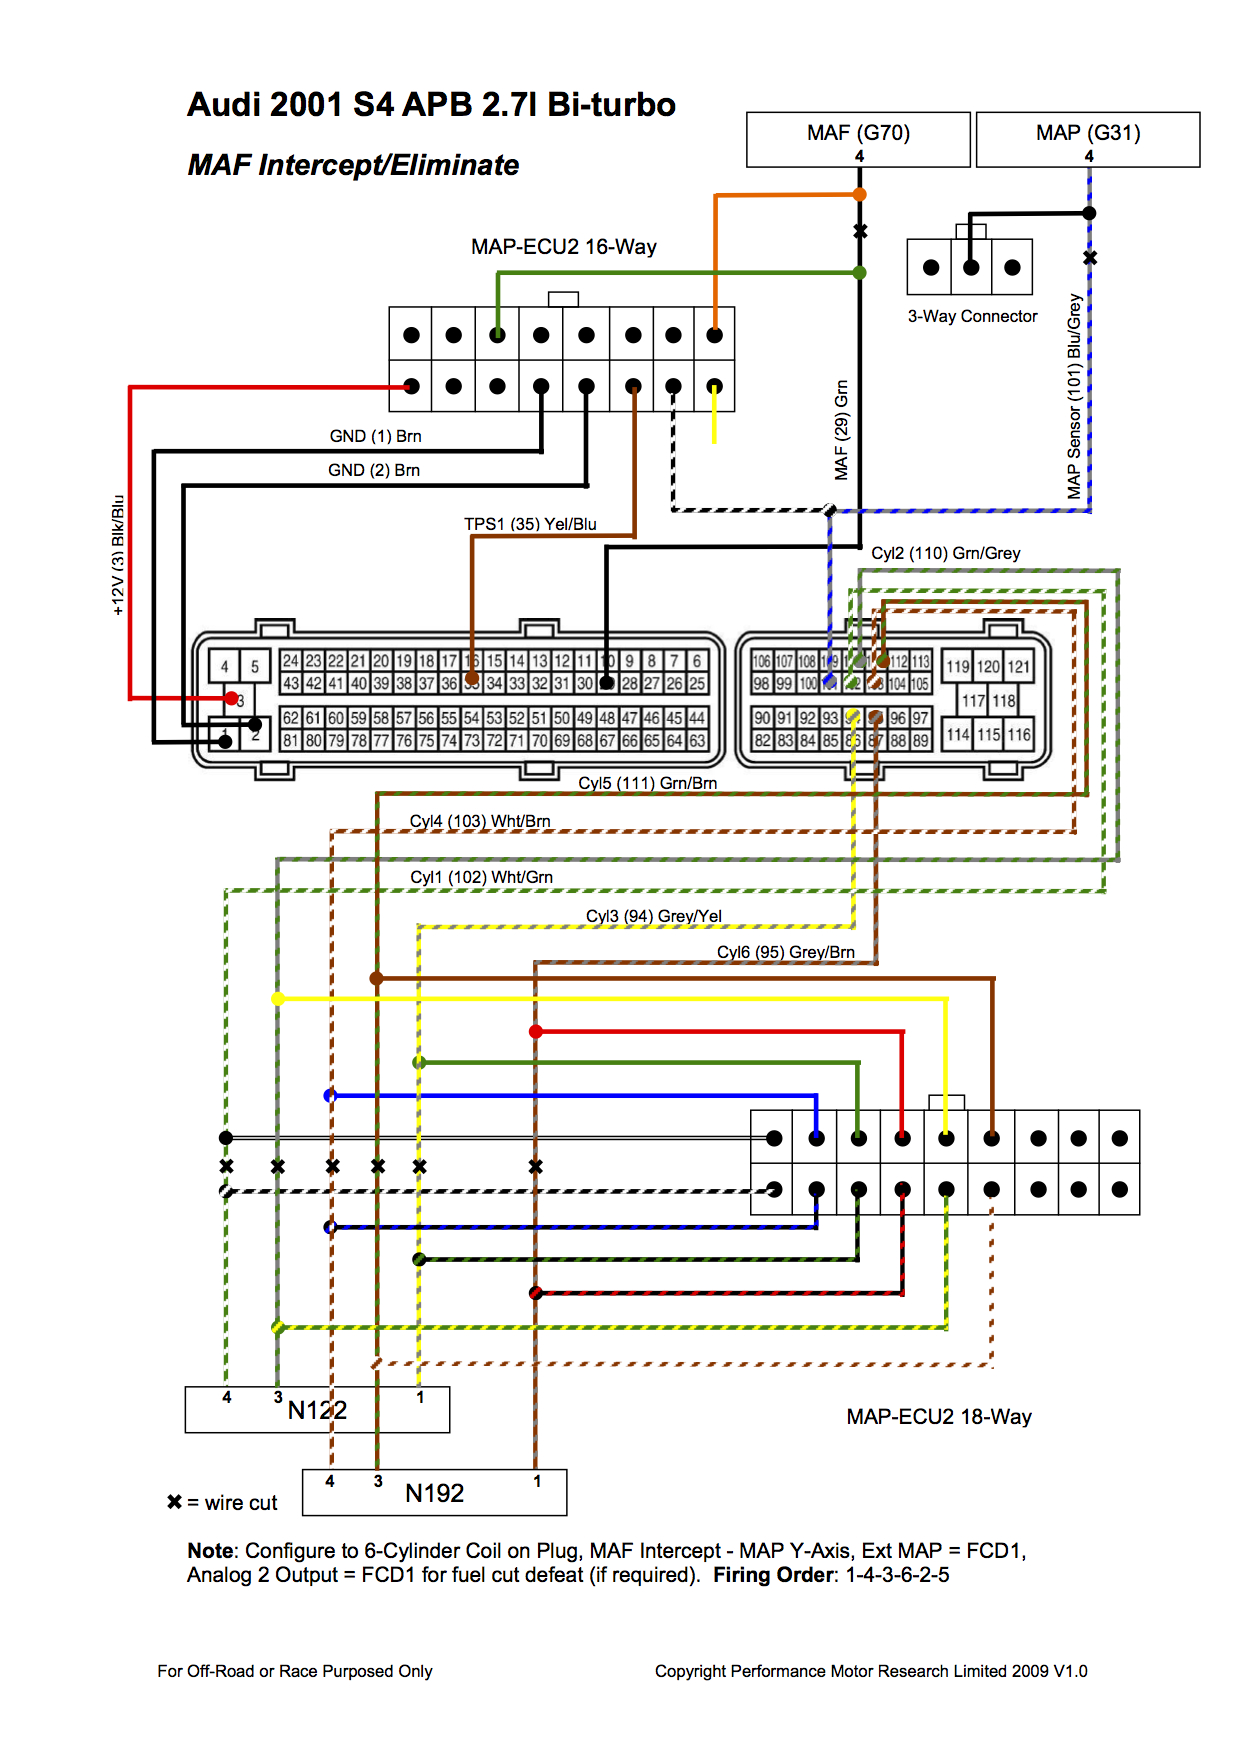 Audi S4 20011 mapecu wiring diagrams audi, bmw, ford, honda, lexus, nissan, toyota GM Factory Wiring Diagram at webbmarketing.co